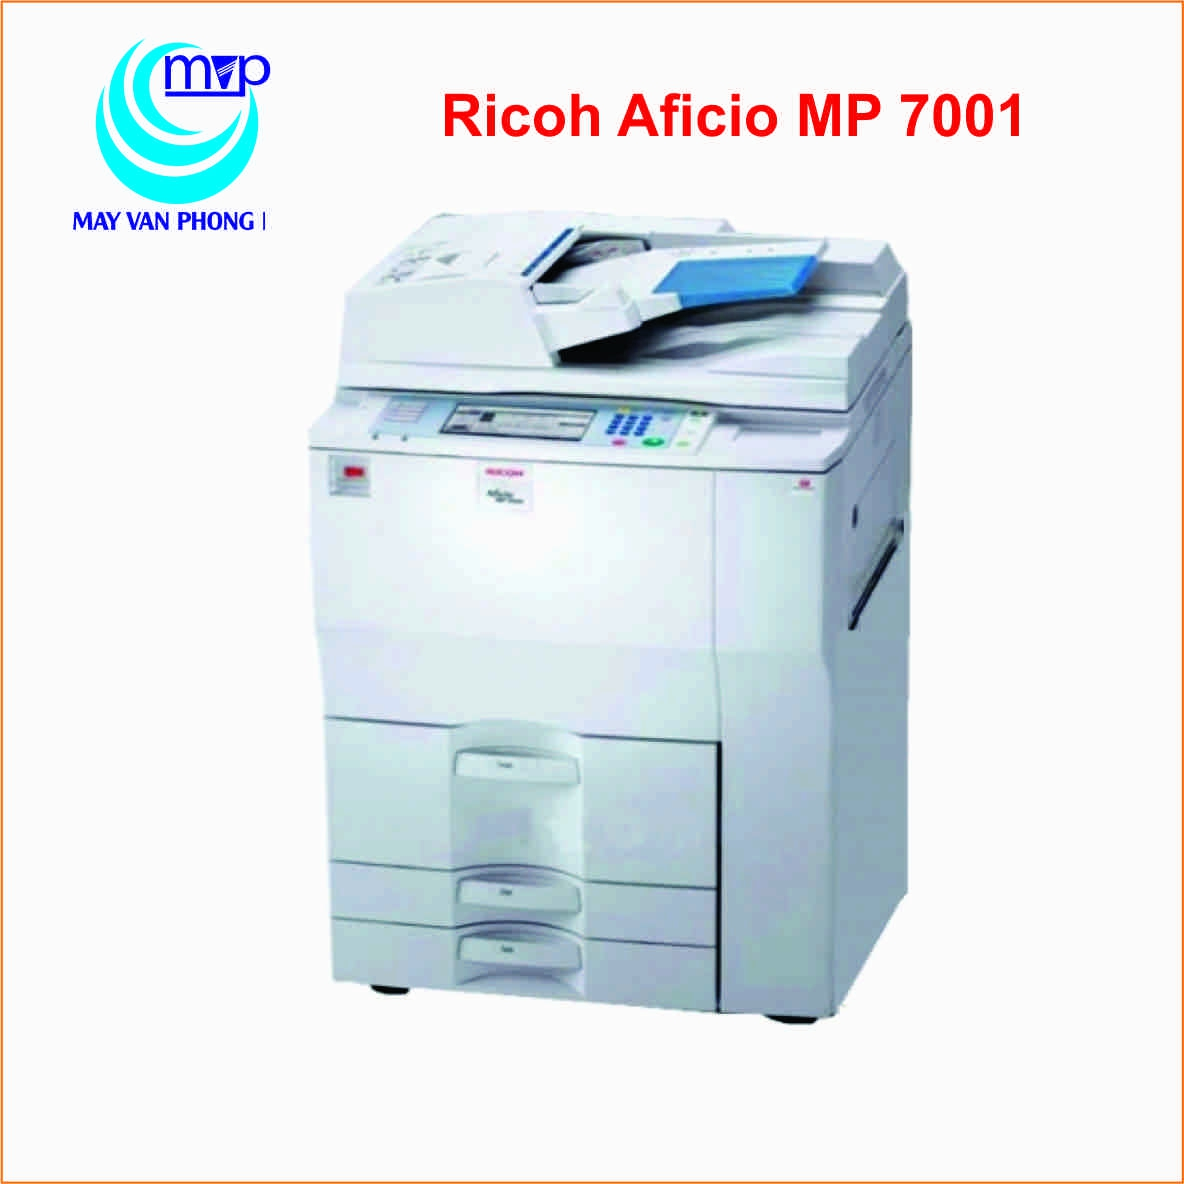 Ricoh Aficio MP 7001